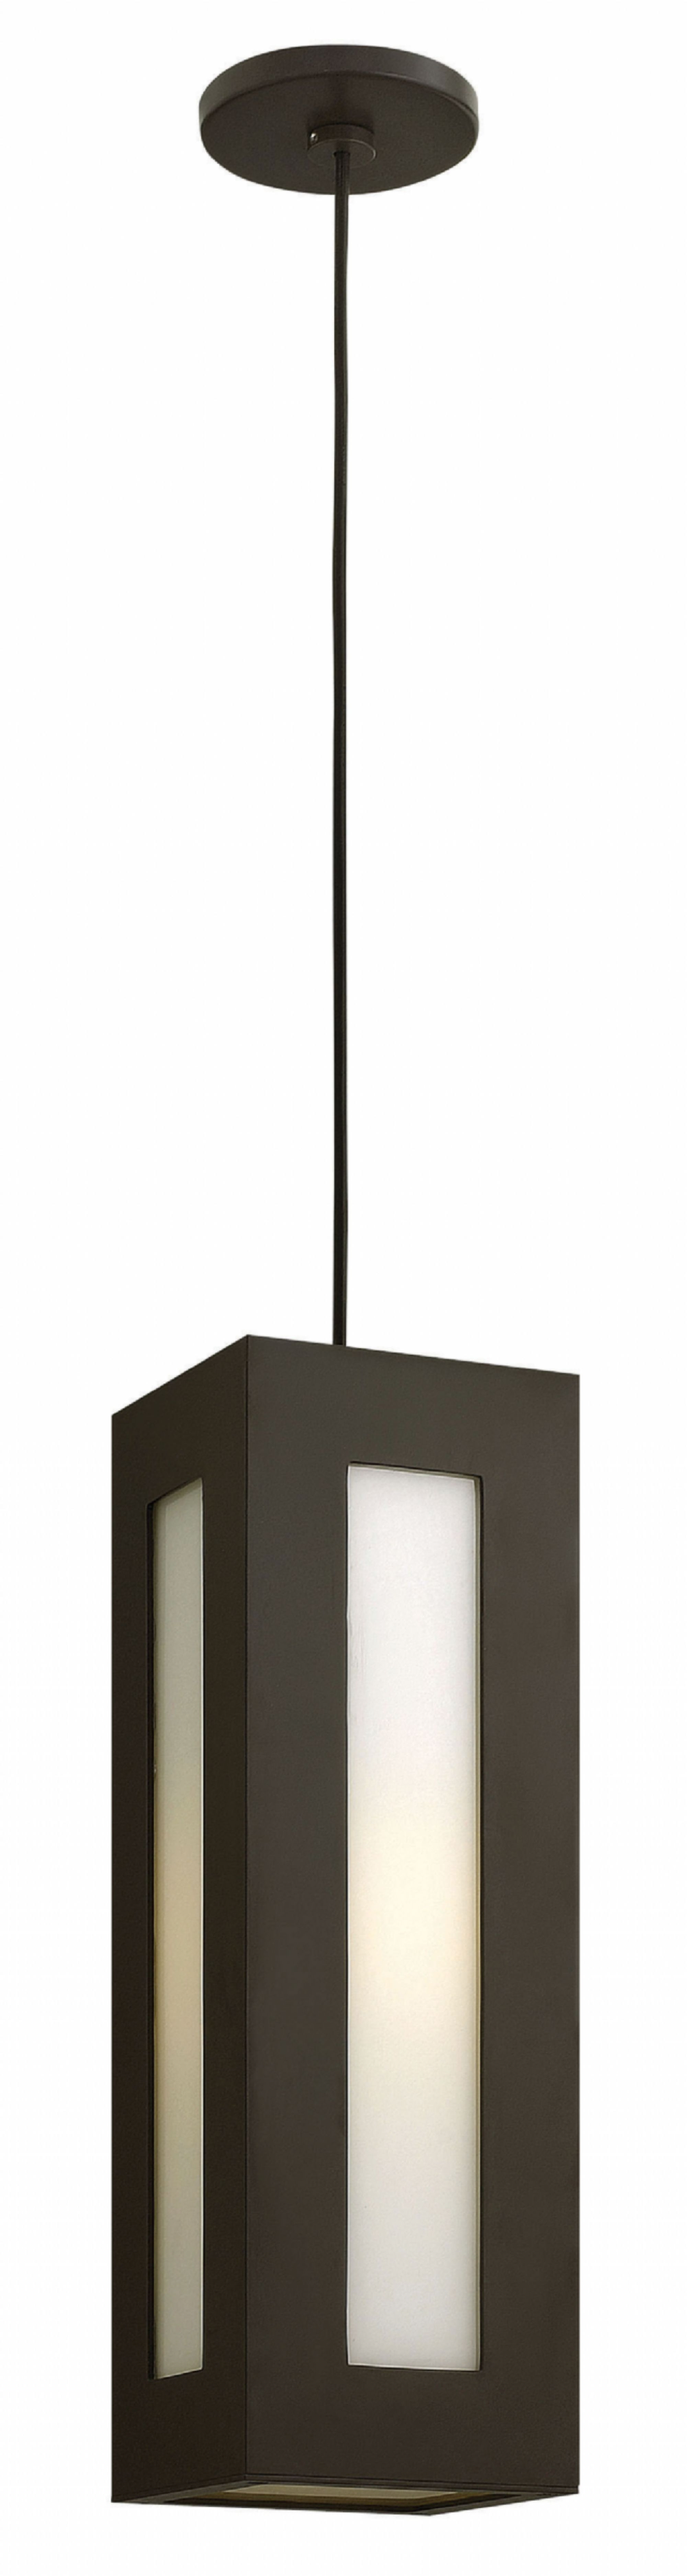 Bronze Dorian > Exterior Ceiling Mount In Recent Hinkley Outdoor Hanging Lights (View 3 of 20)